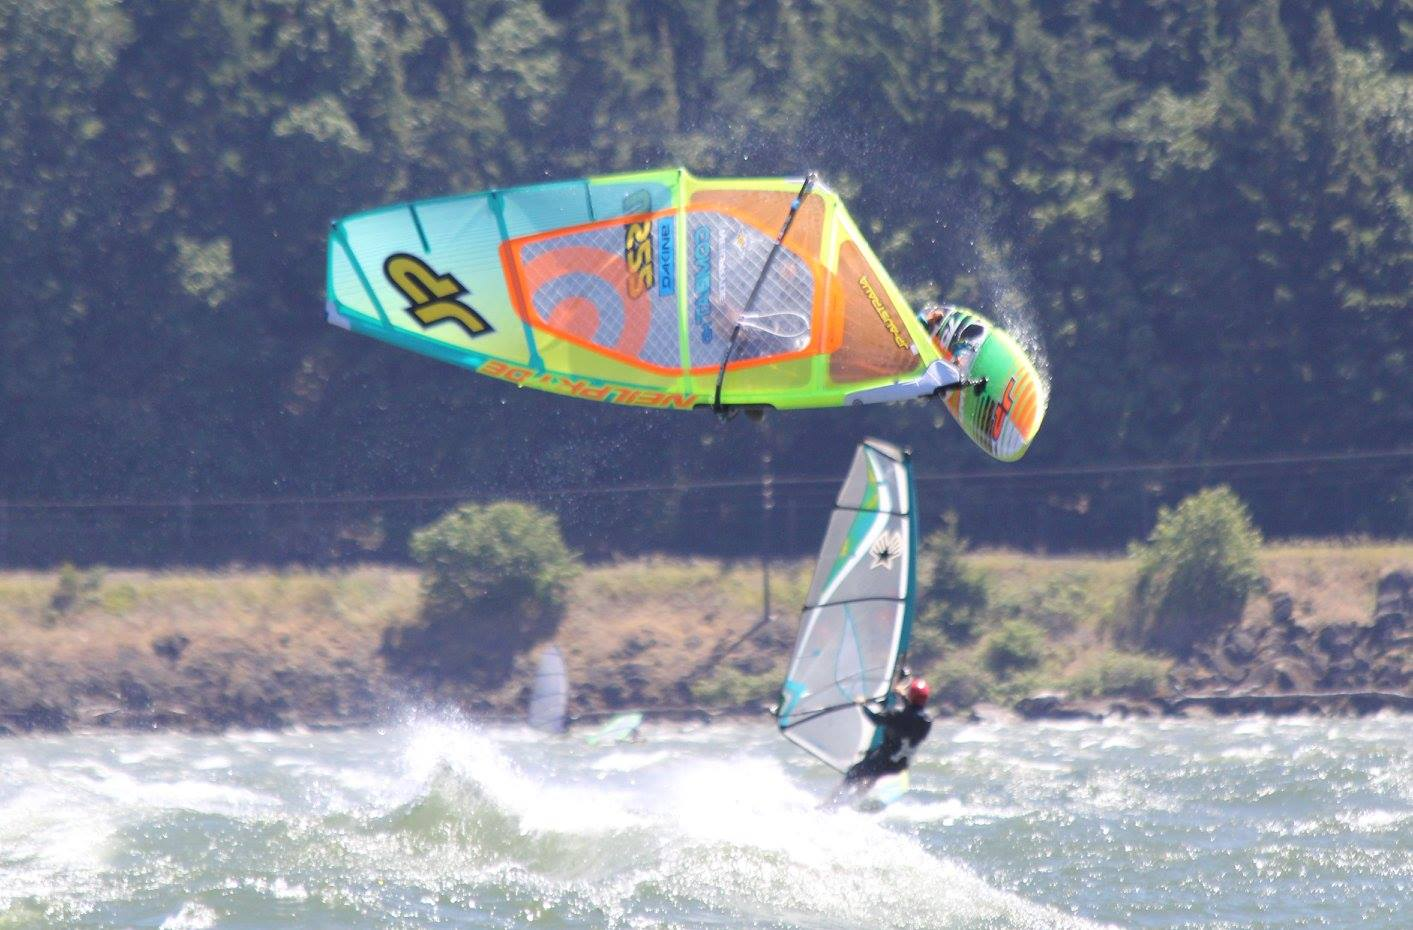 The Columbia River Gorge- windsurfing capital of the world - today.